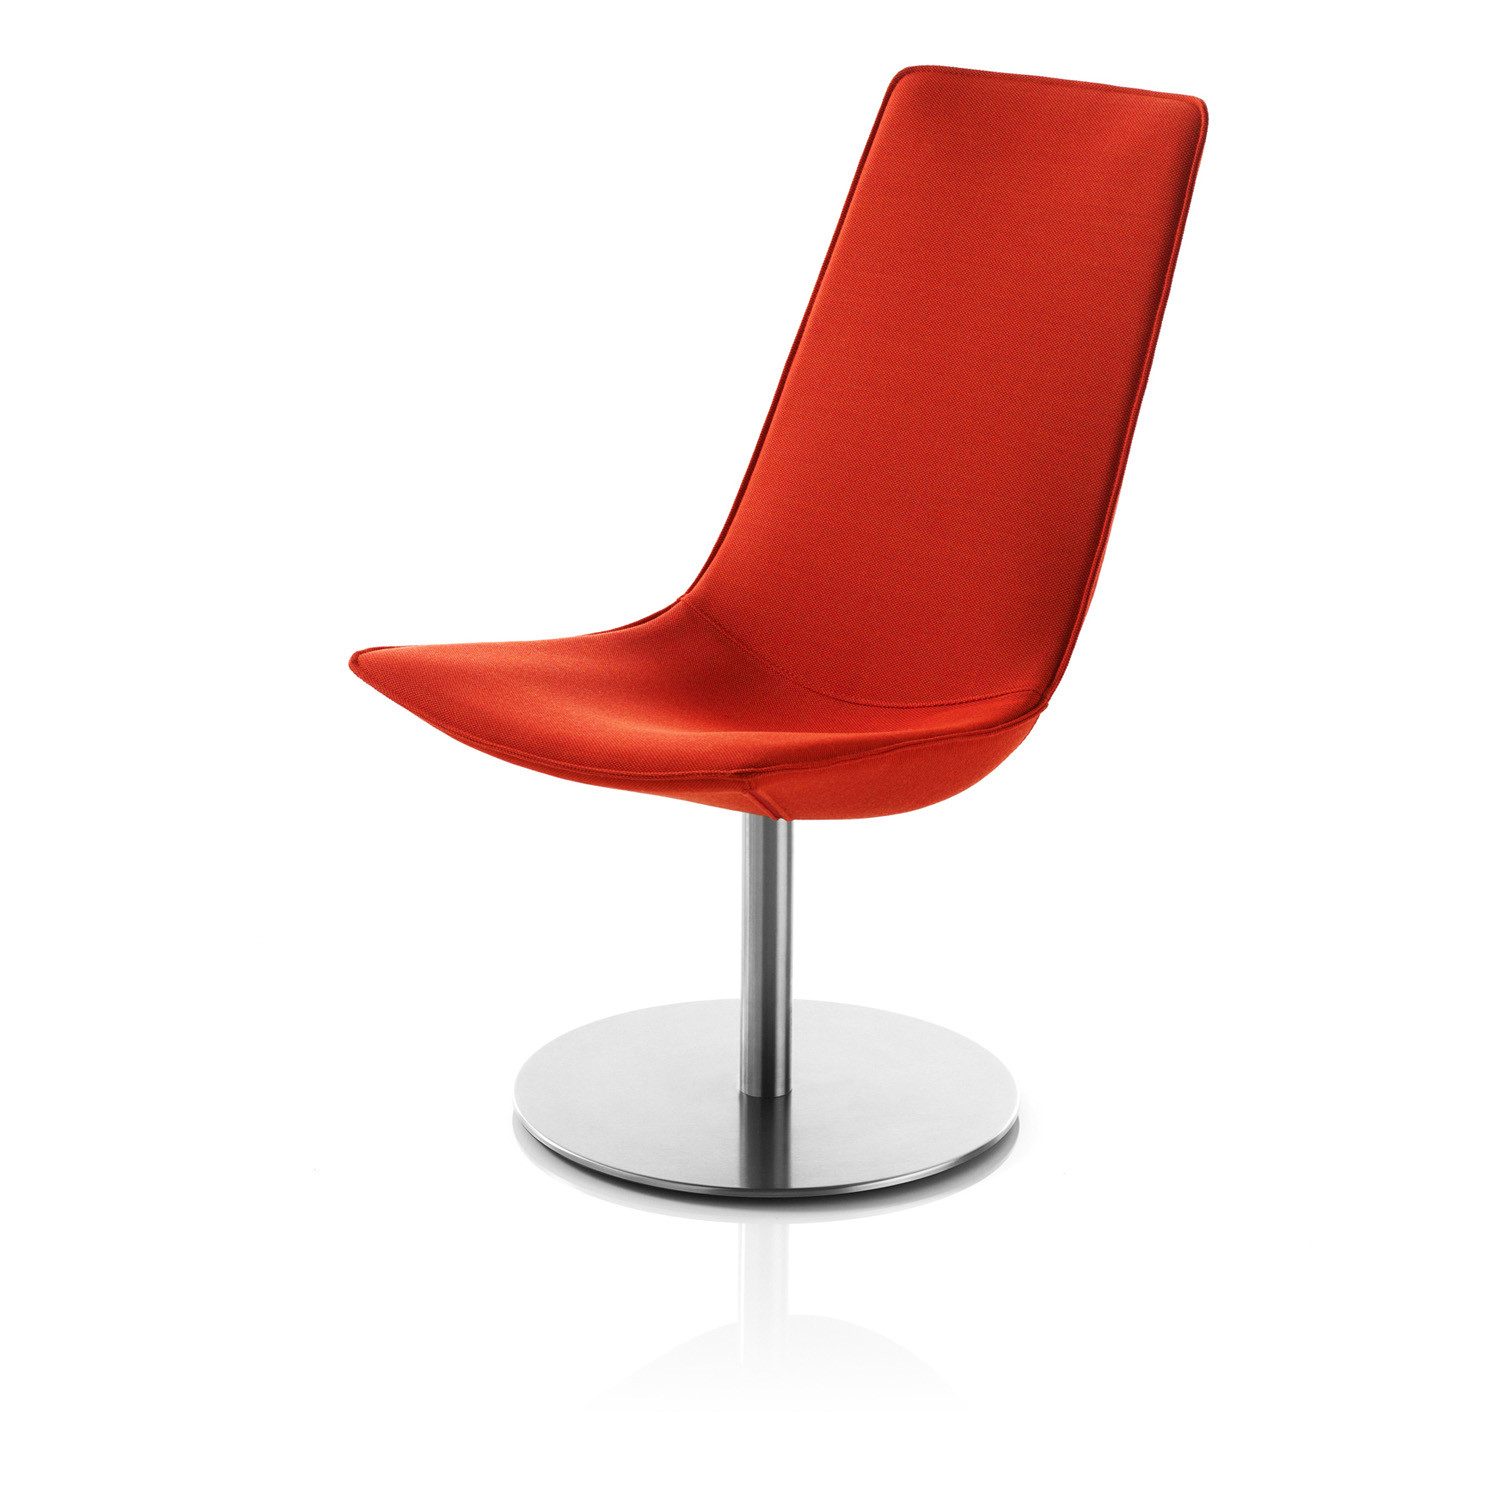 Comet Chair with pedestal base